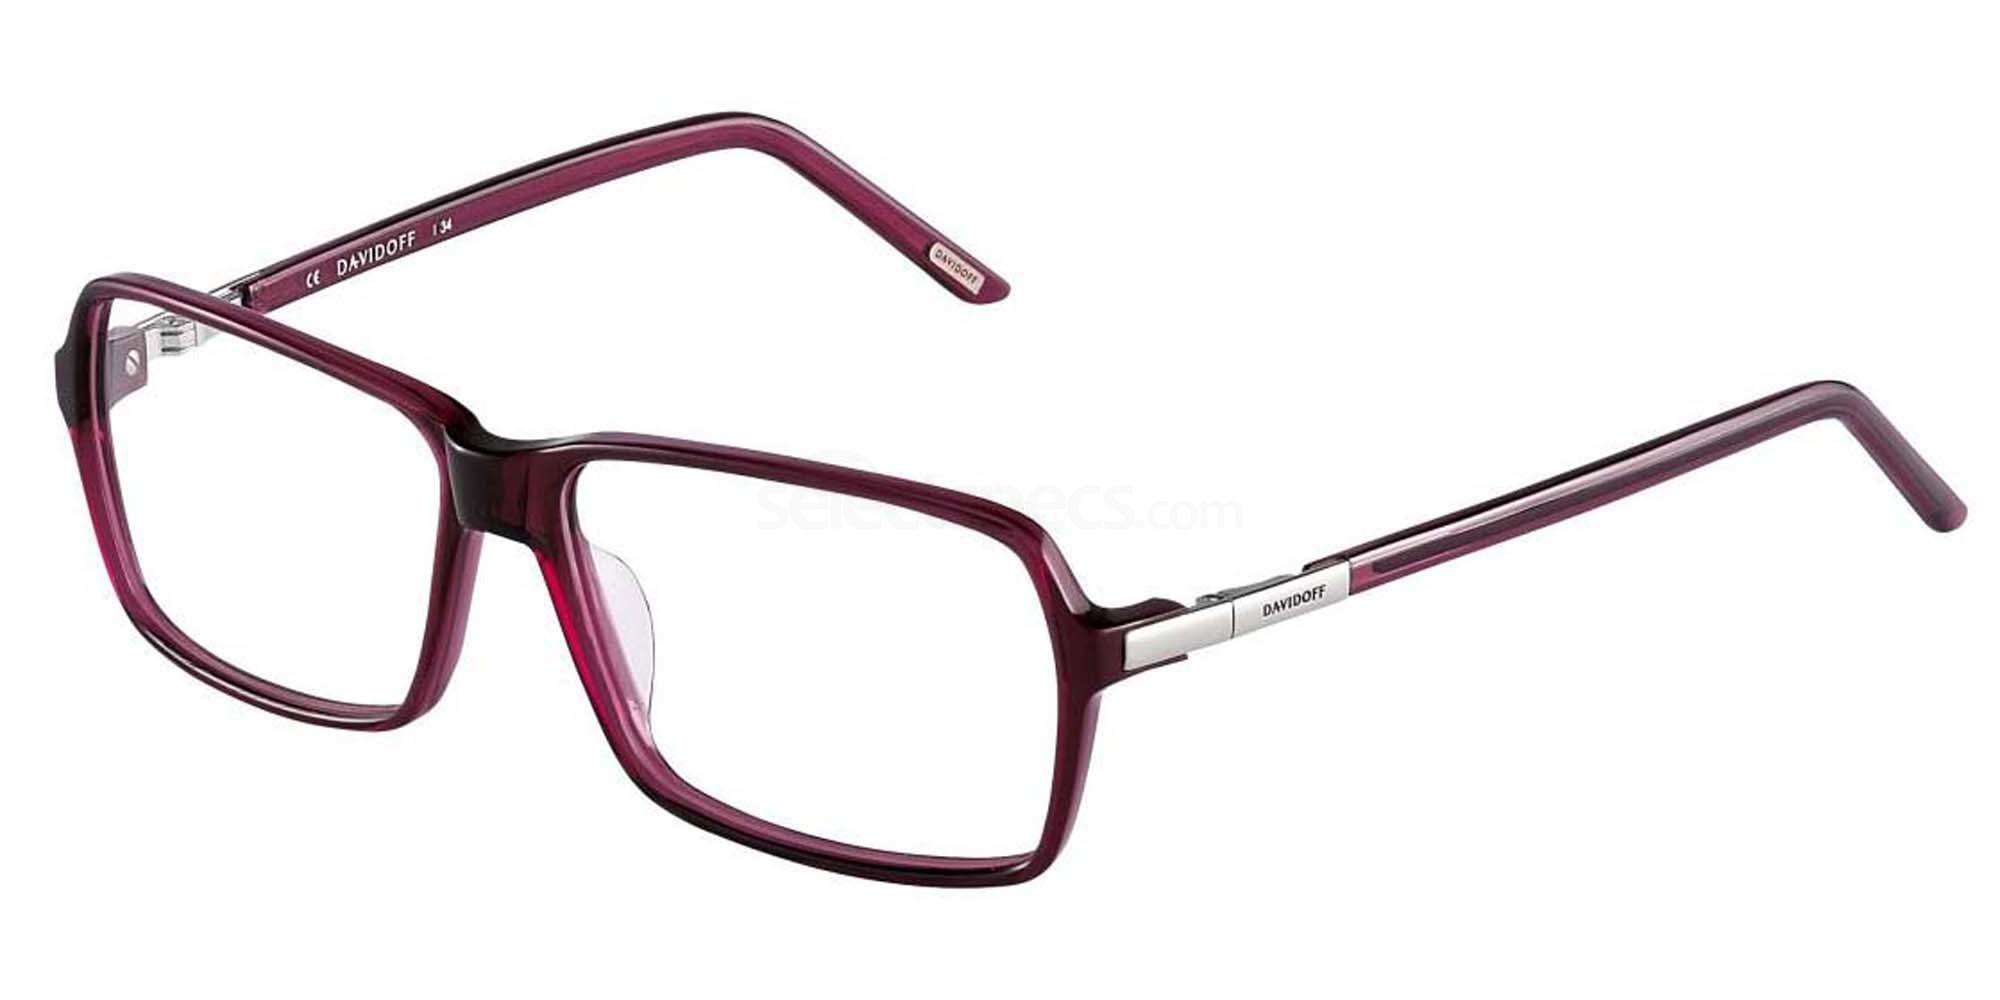 6160 92009 Glasses, DAVIDOFF Eyewear